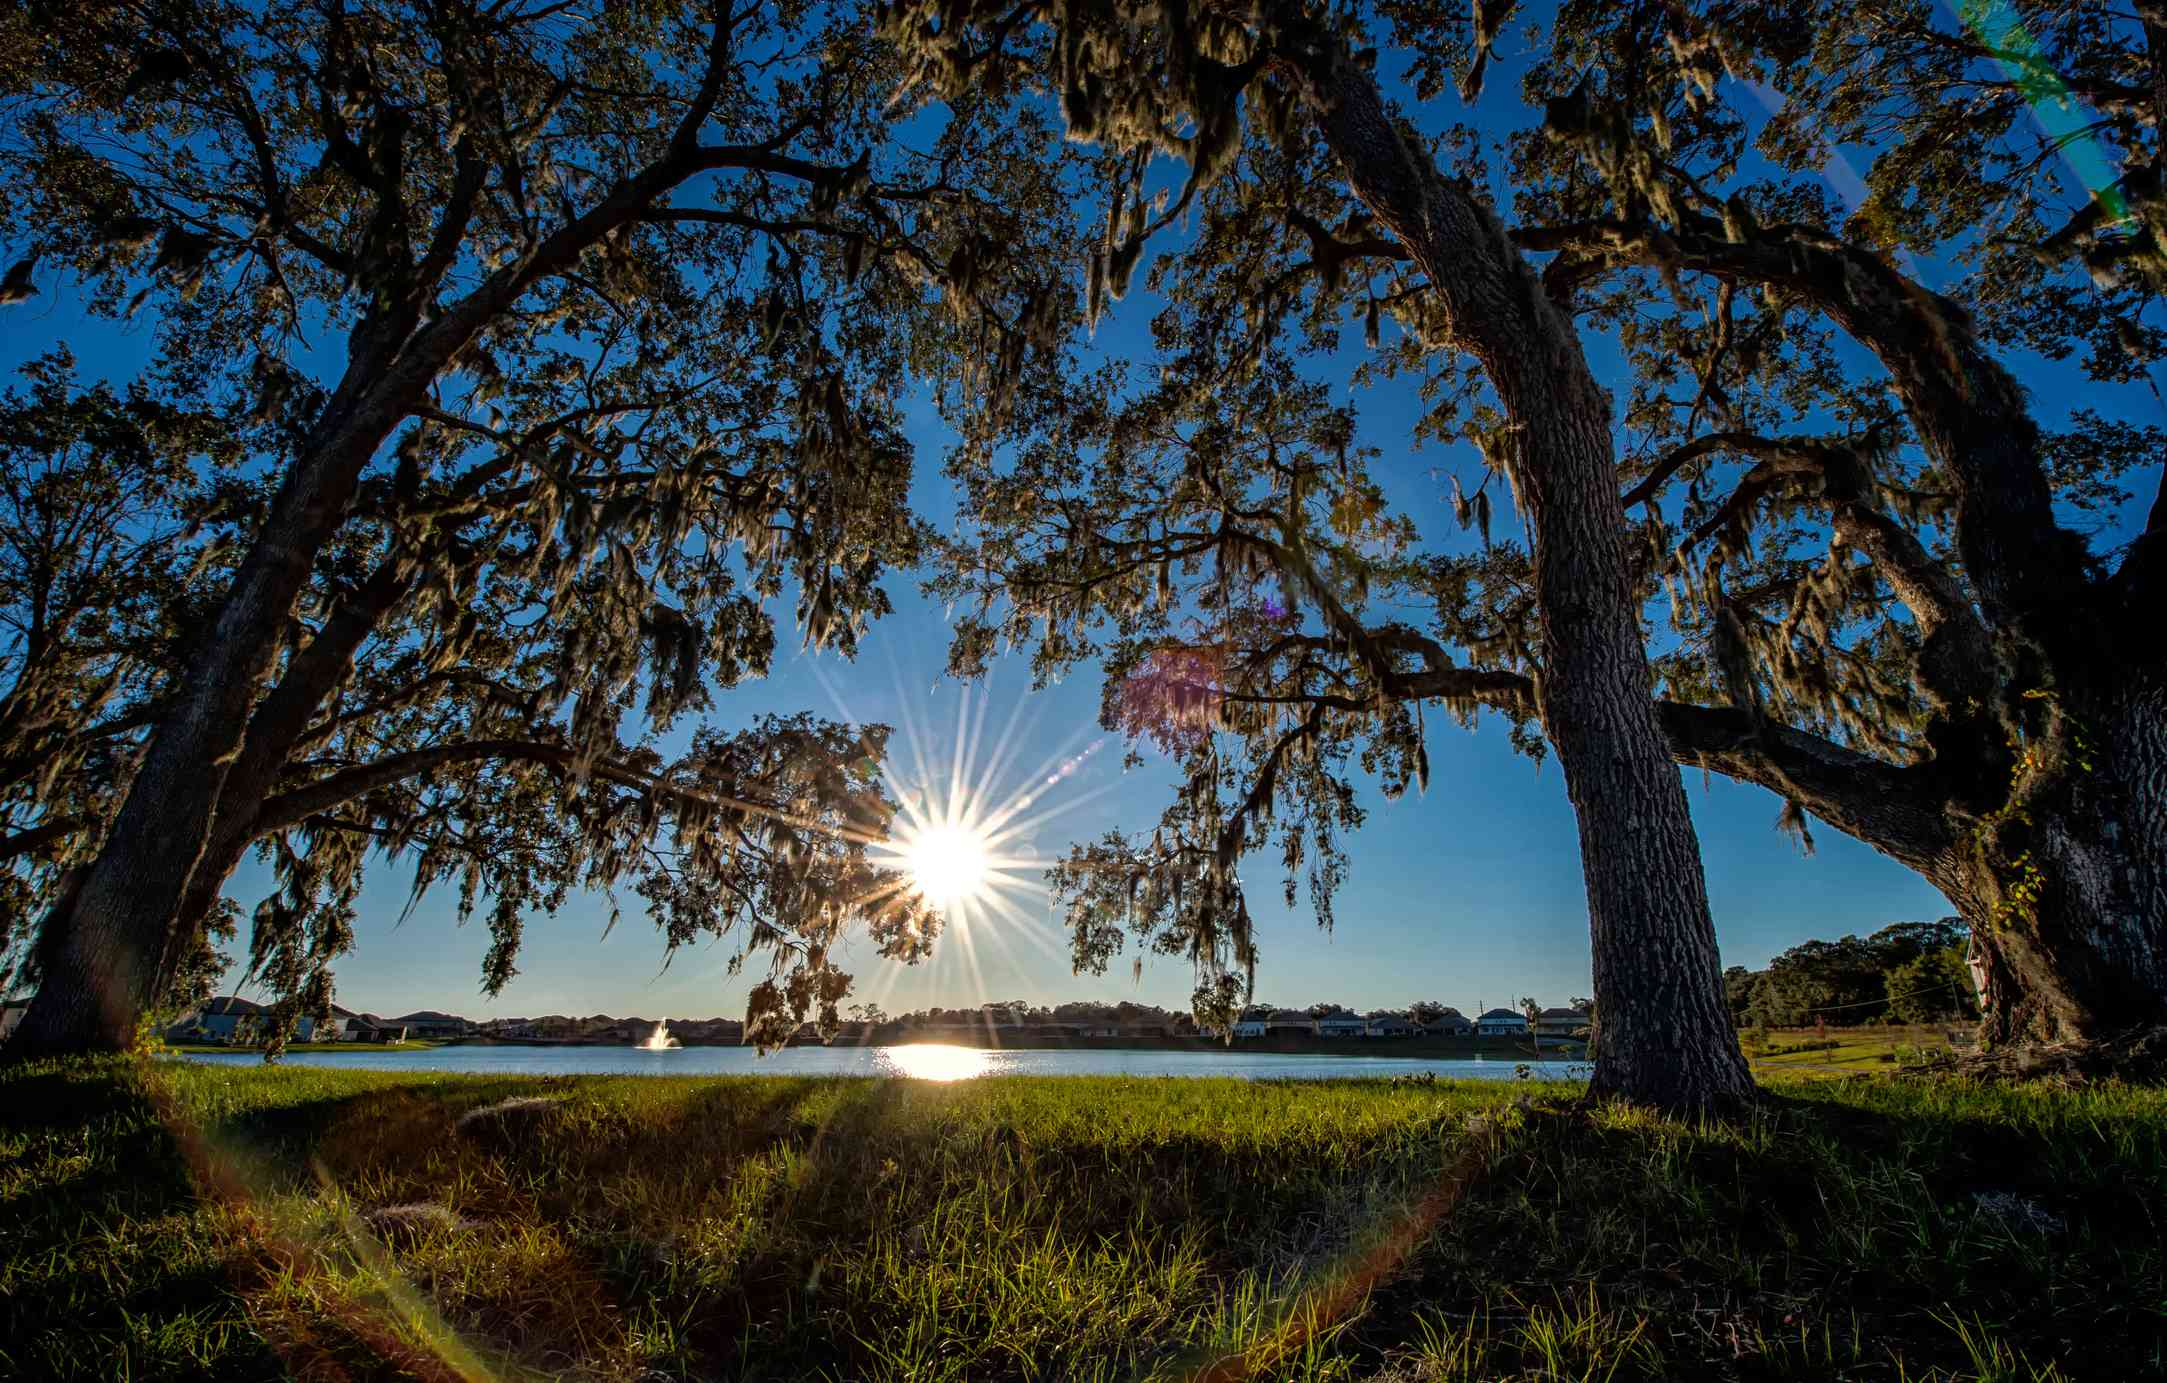 Tall trees backlit by the sun in Orlando, Florida